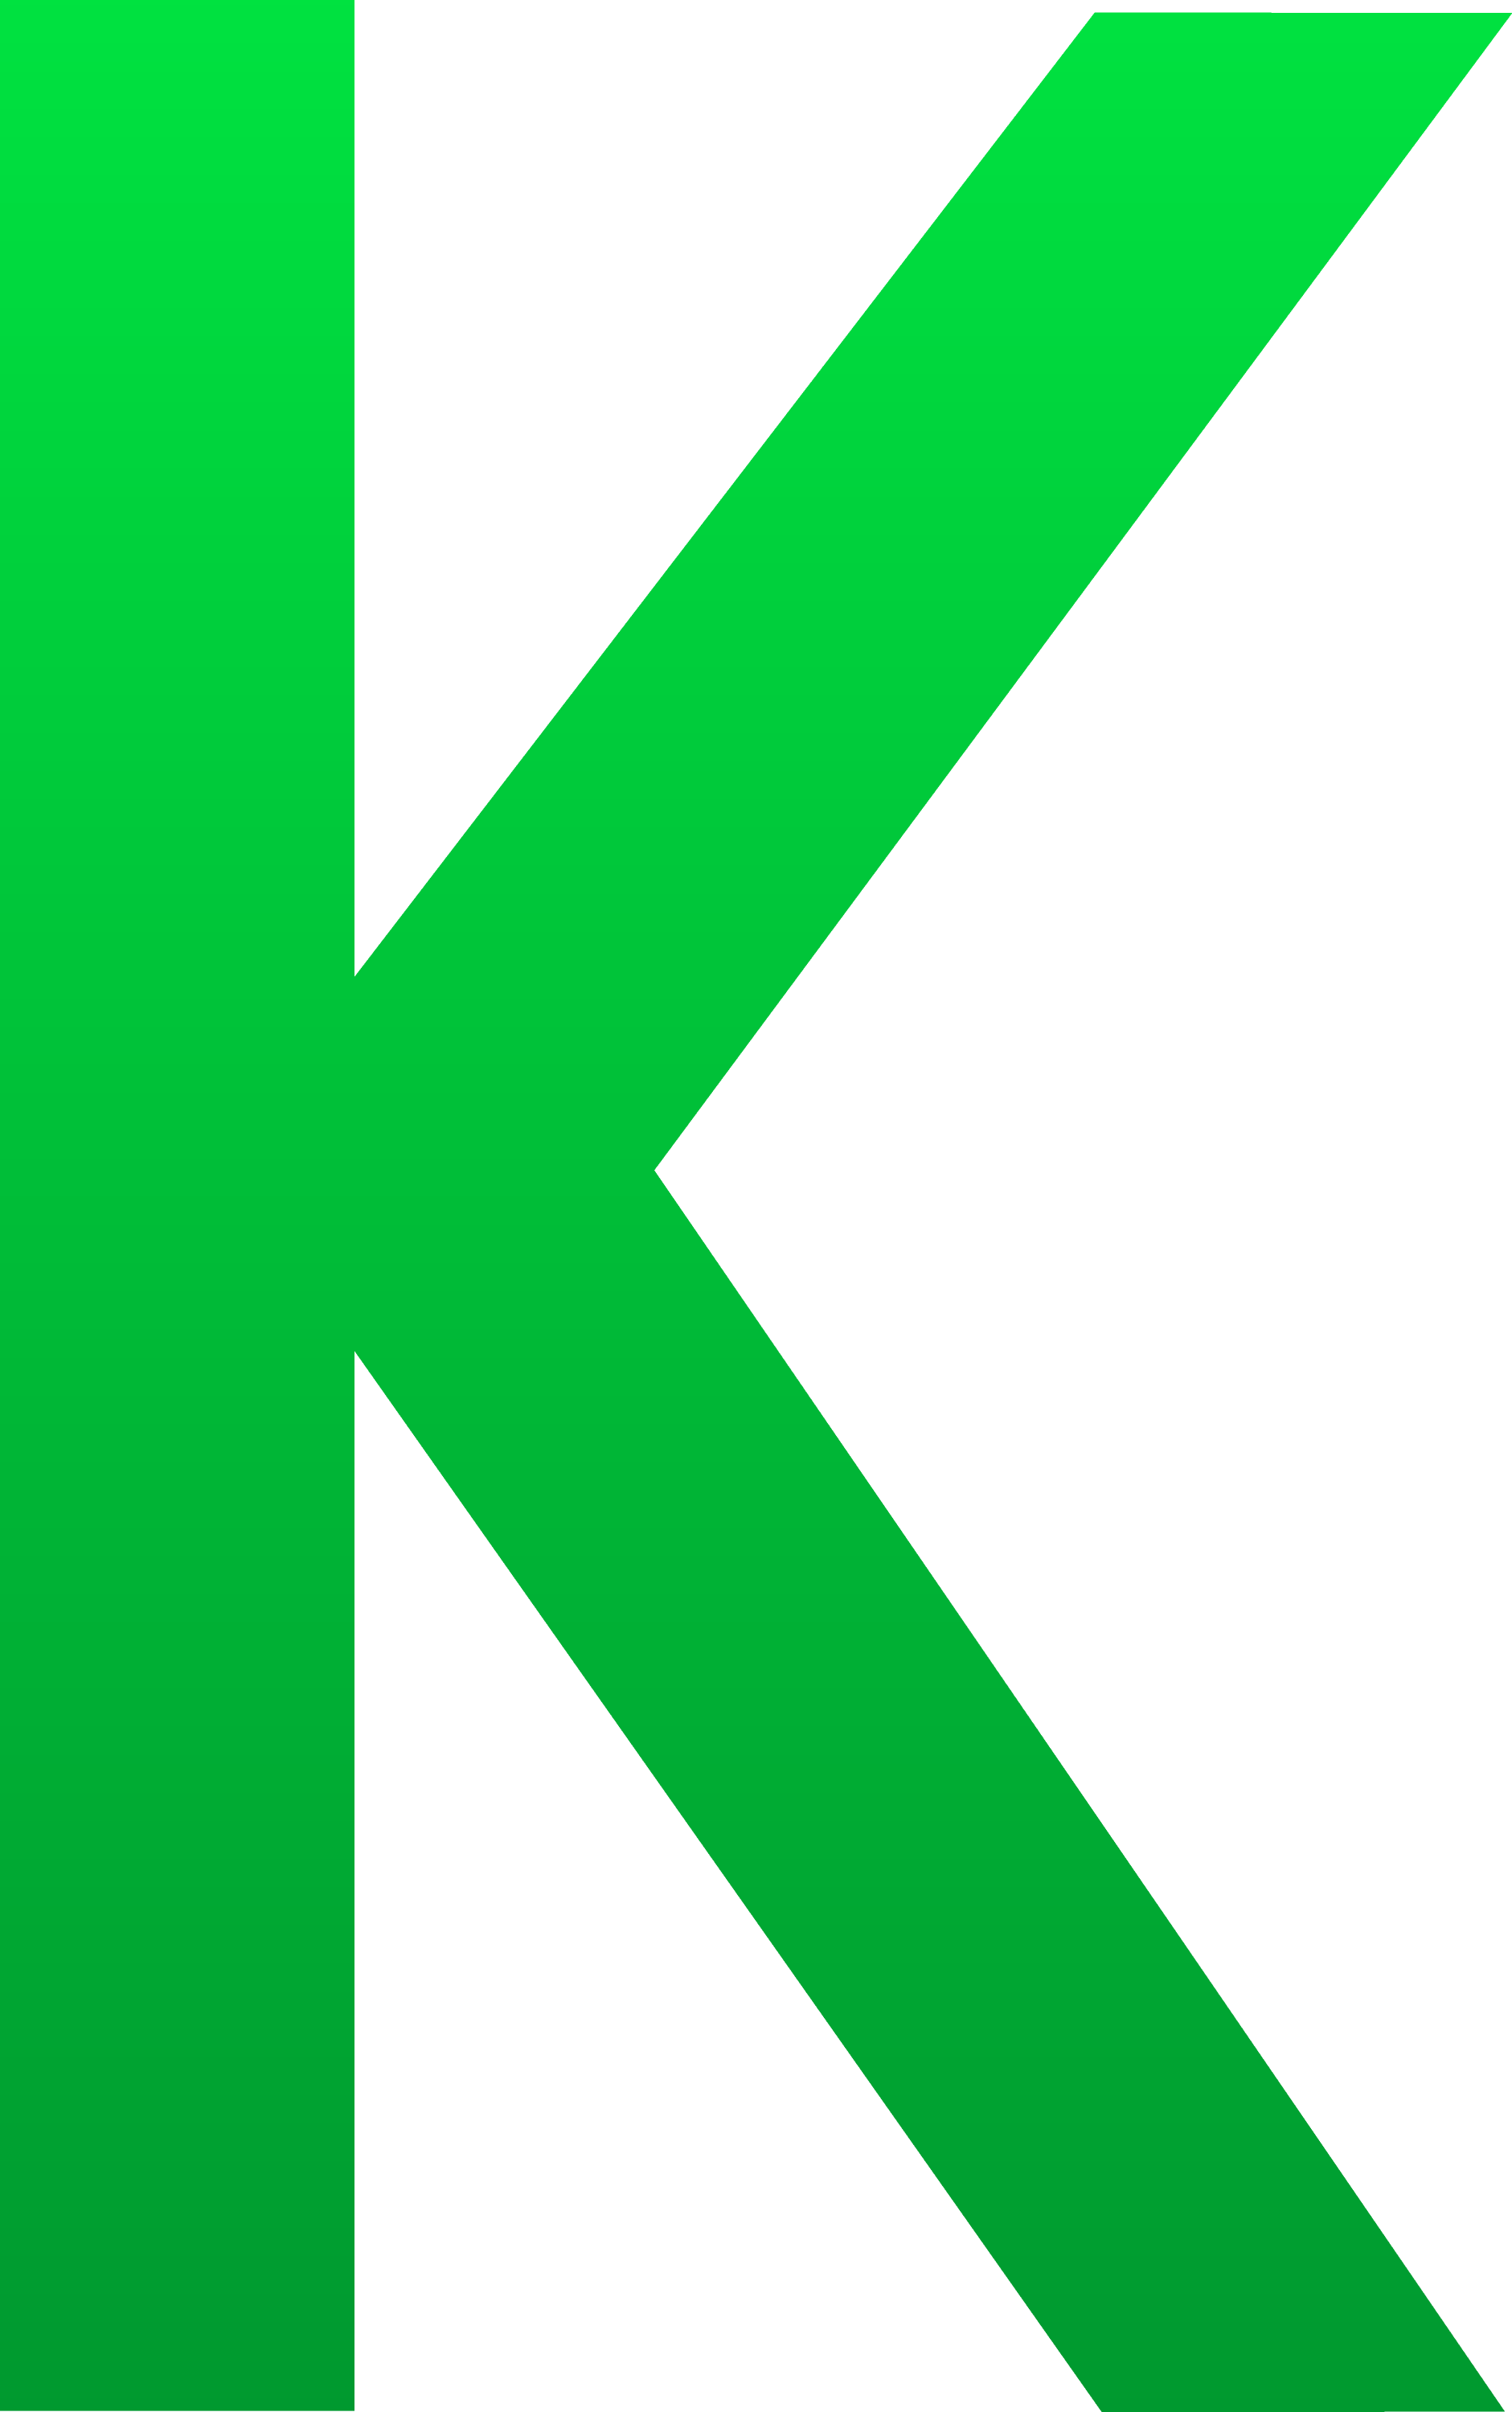 The Letter K - Free Clip Art